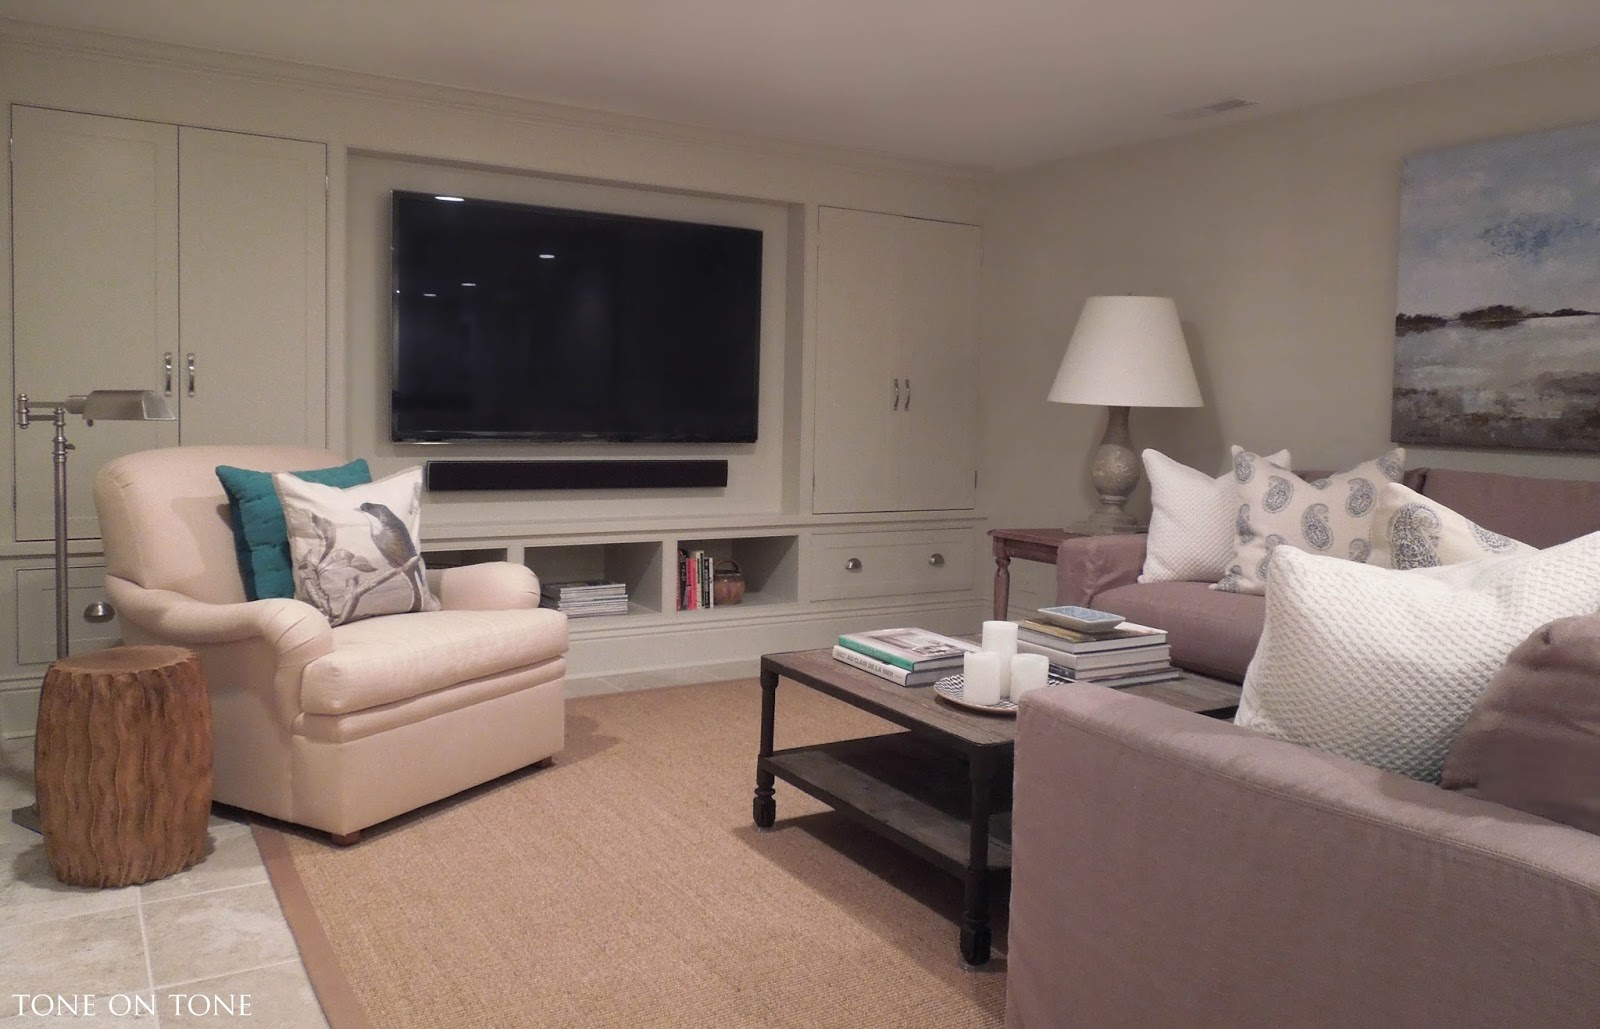 Basement tv room design - And Here Is Our Sitting Tv Room All Finished It Needed To Be Casual And Comfy Due To The Lack Of Sunlight A Palette Of Whites And Grays Would Ve Been